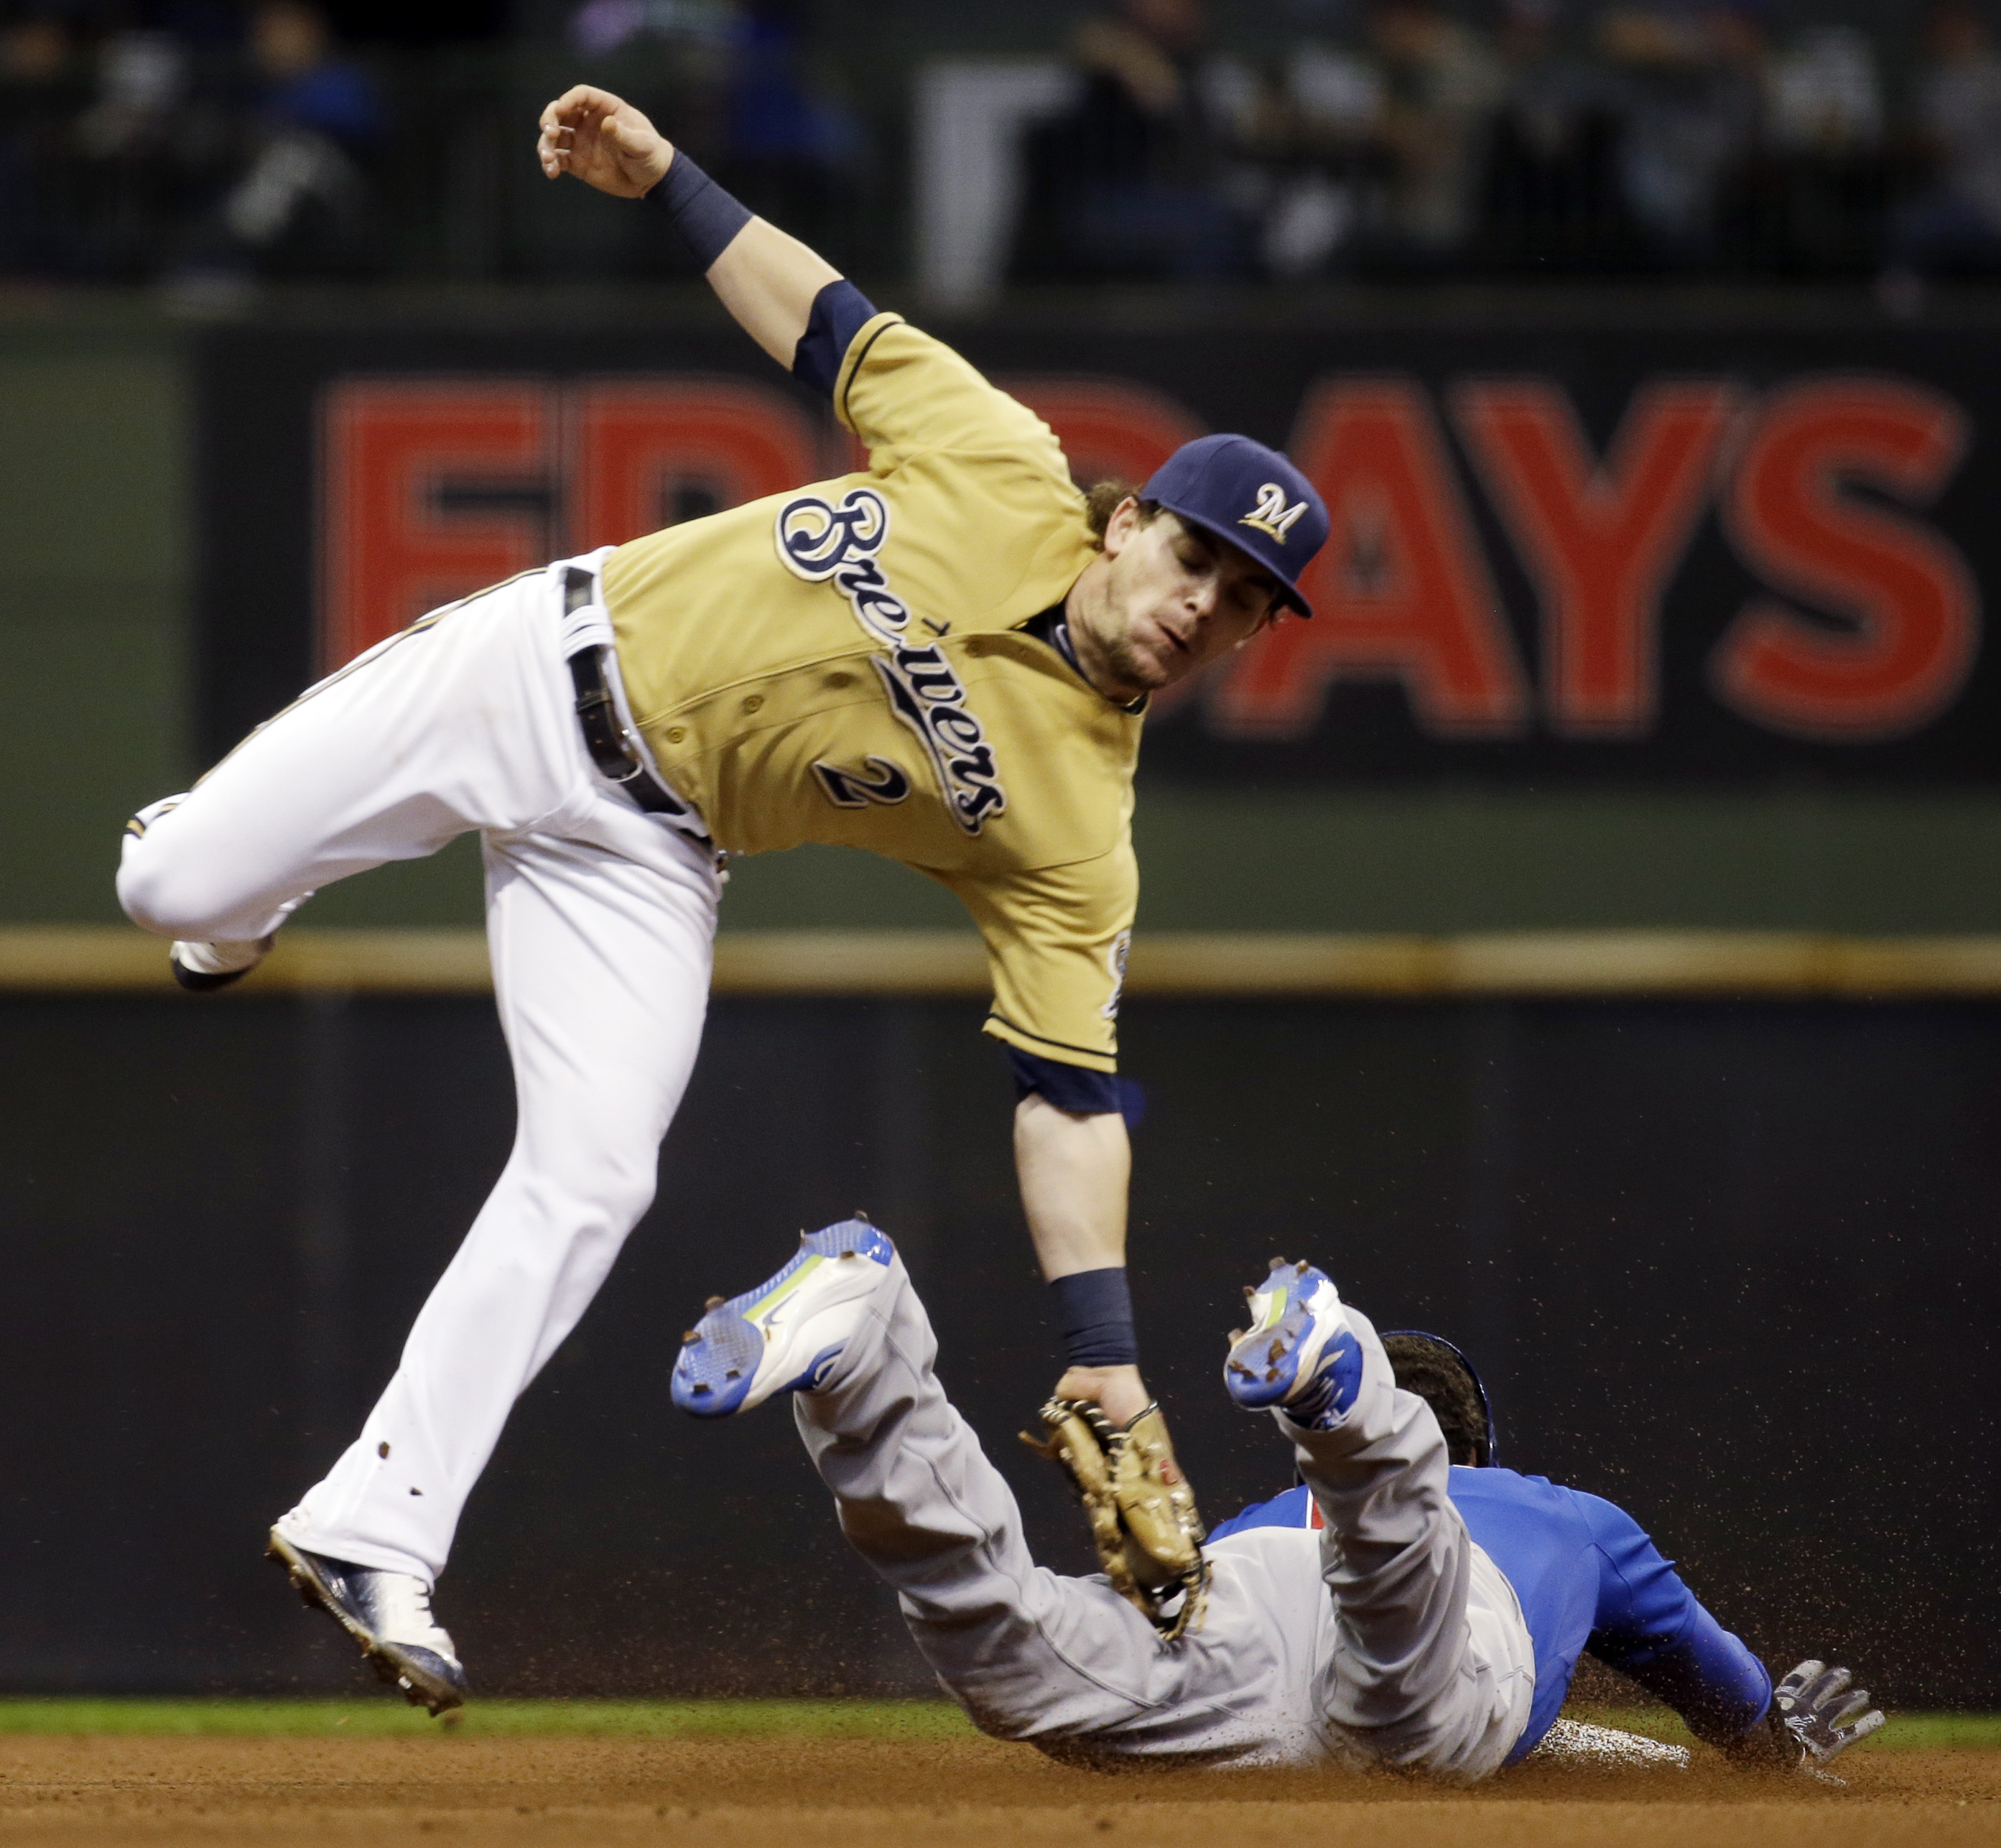 Chicago Cubs' Quintin Berry slides safely under the tag of Milwaukee Brewers' Scooter Gennett as he steals second during the eighth inning of a baseball game, Sunday, Oct. 4, 2015, in Milwaukee. (AP Photo/Morry Gash)